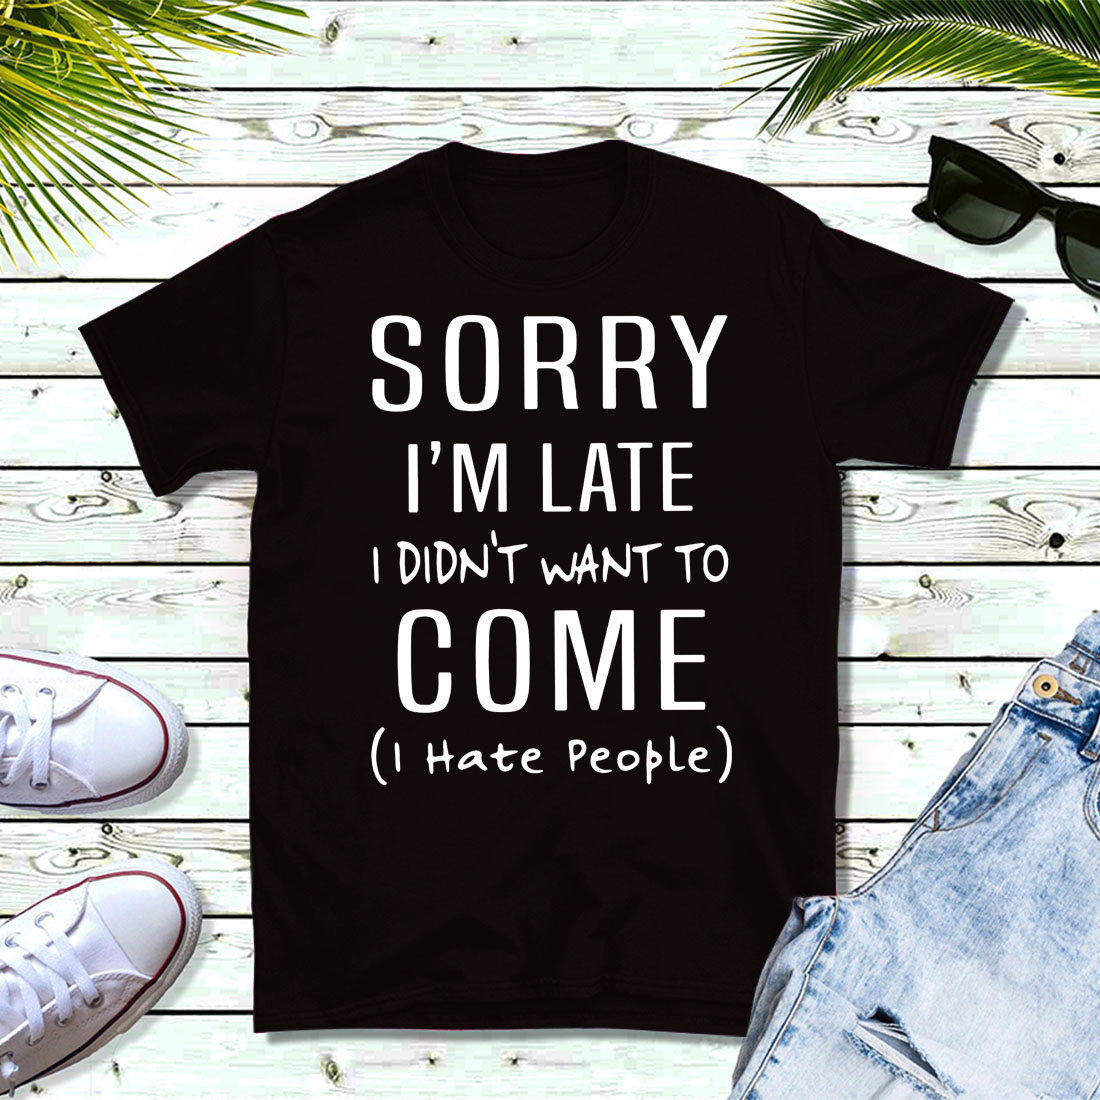 Sorry I'm late I didn't want to come I hate people shirt